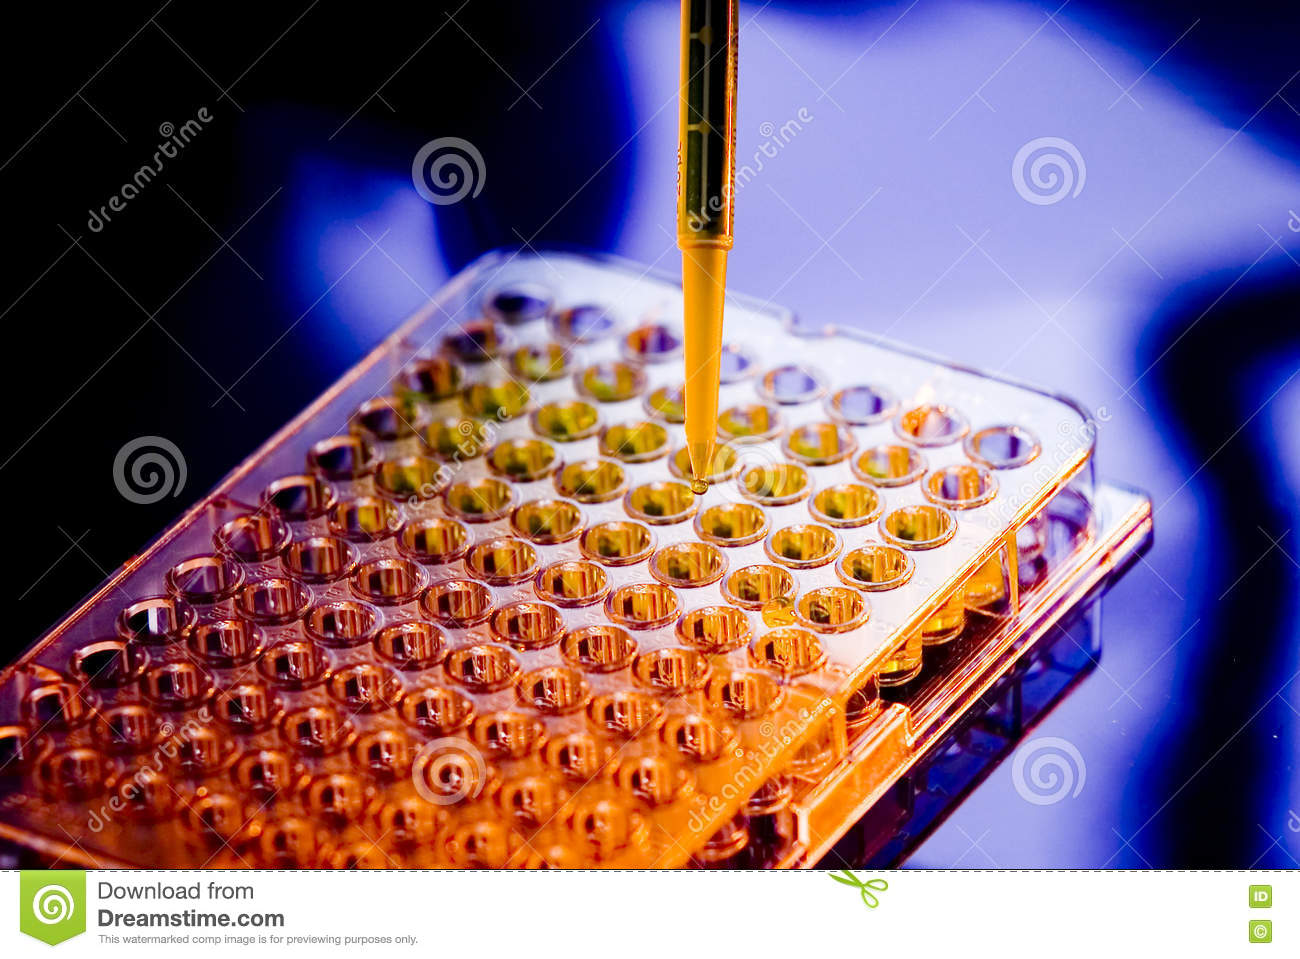 Hospital Medical Sample Tray Pipette Testing Laboratory